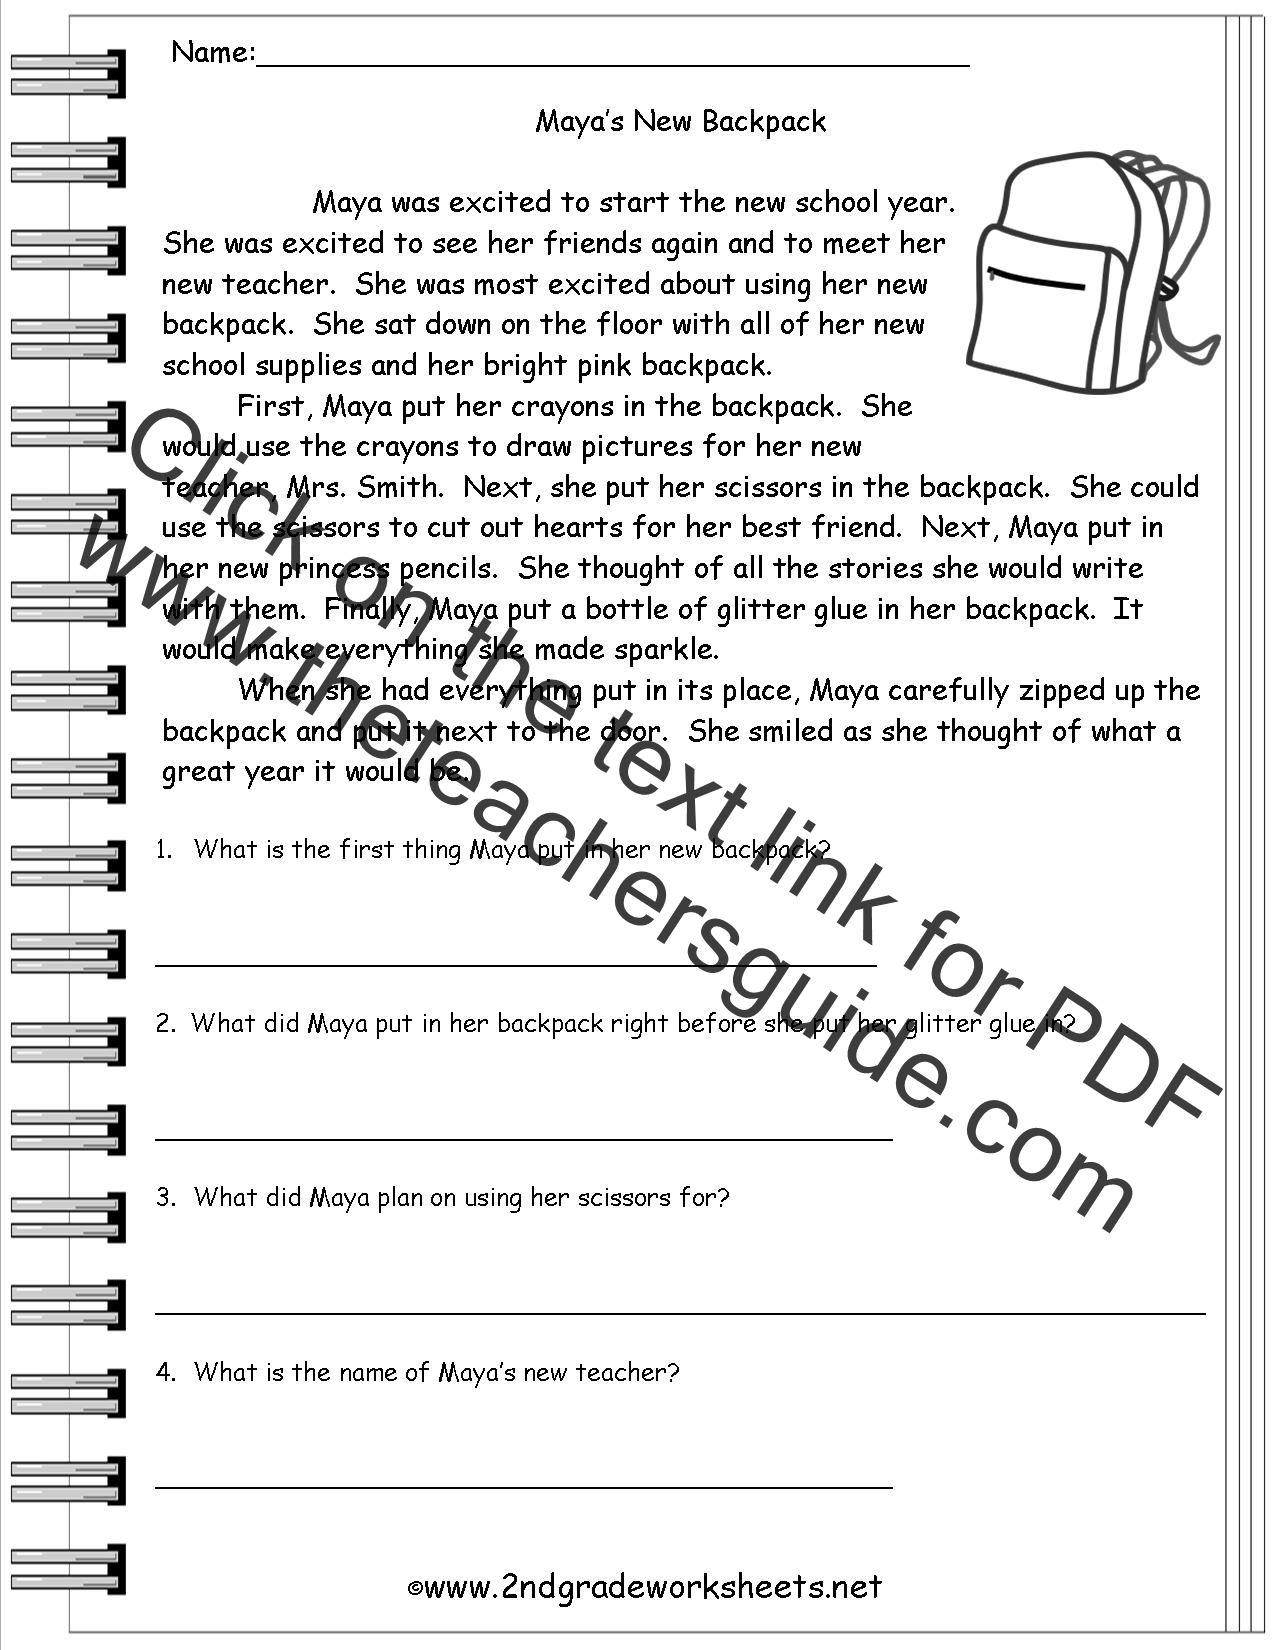 Worksheet Short Story With Comprehension Questions reading worksheeets literature worksheets